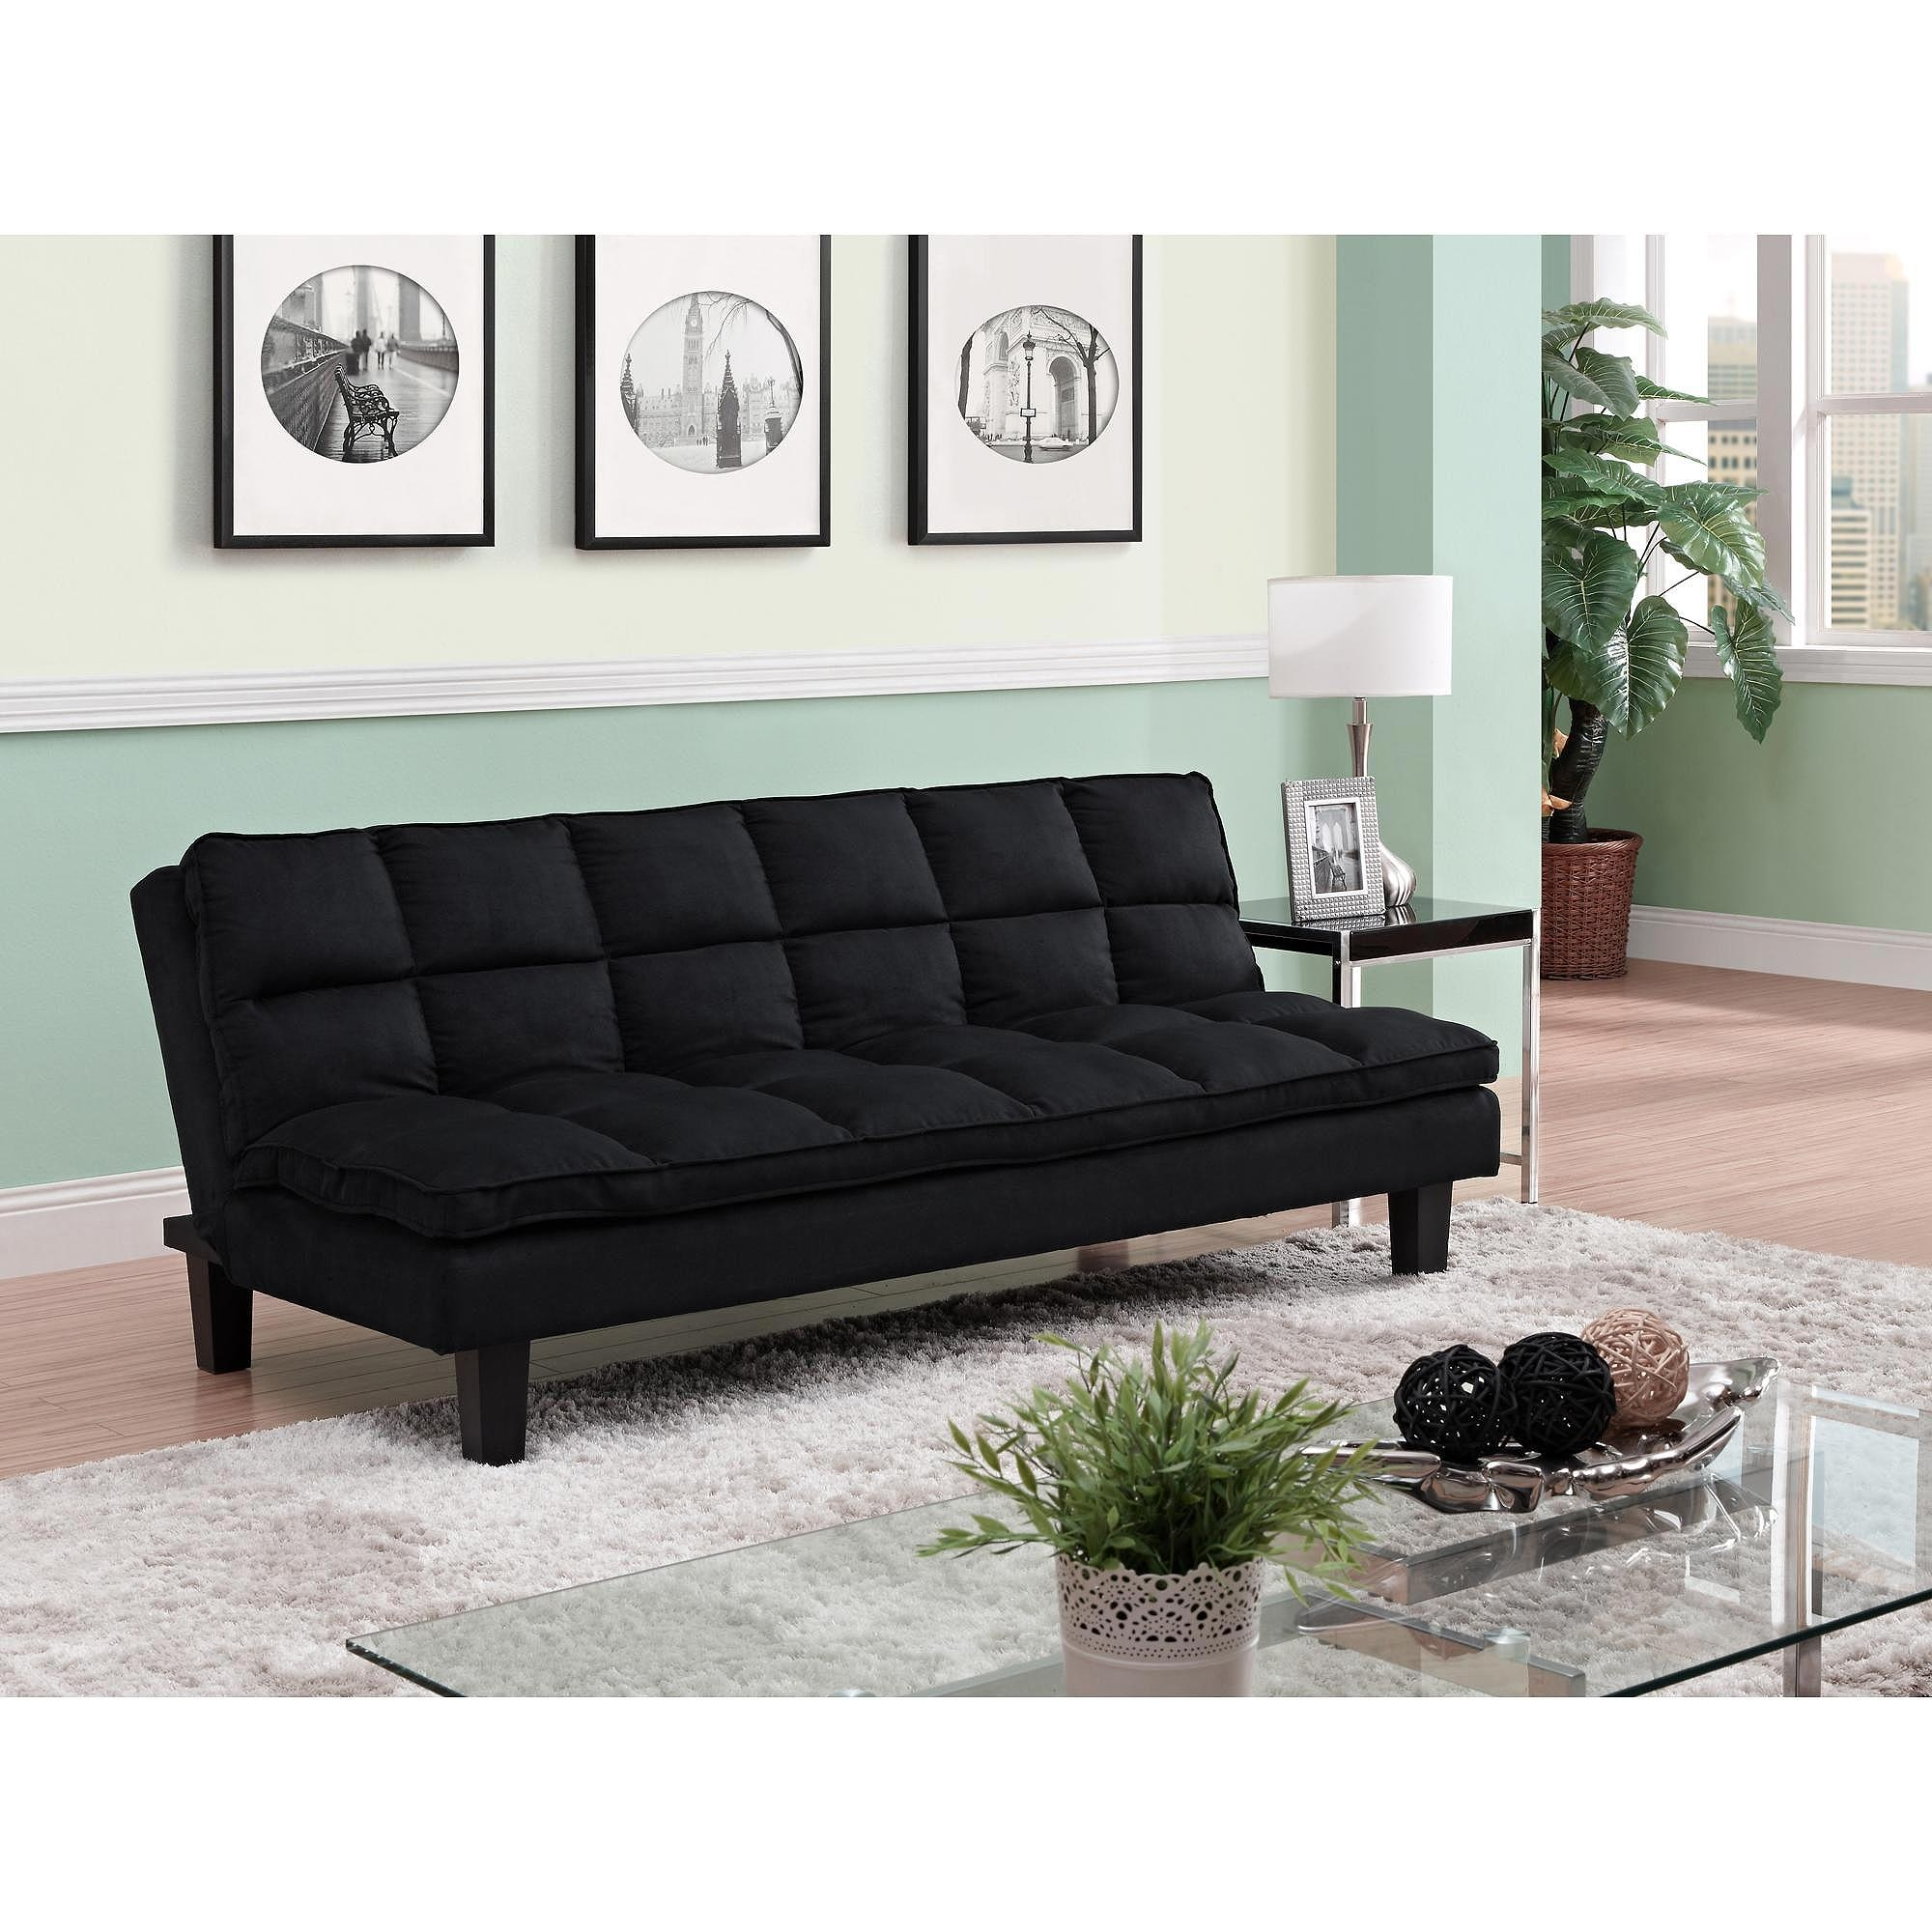 Allegra Pillow Top Futon, Black – Walmart Within Wallmart Sofa (Image 4 of 20)